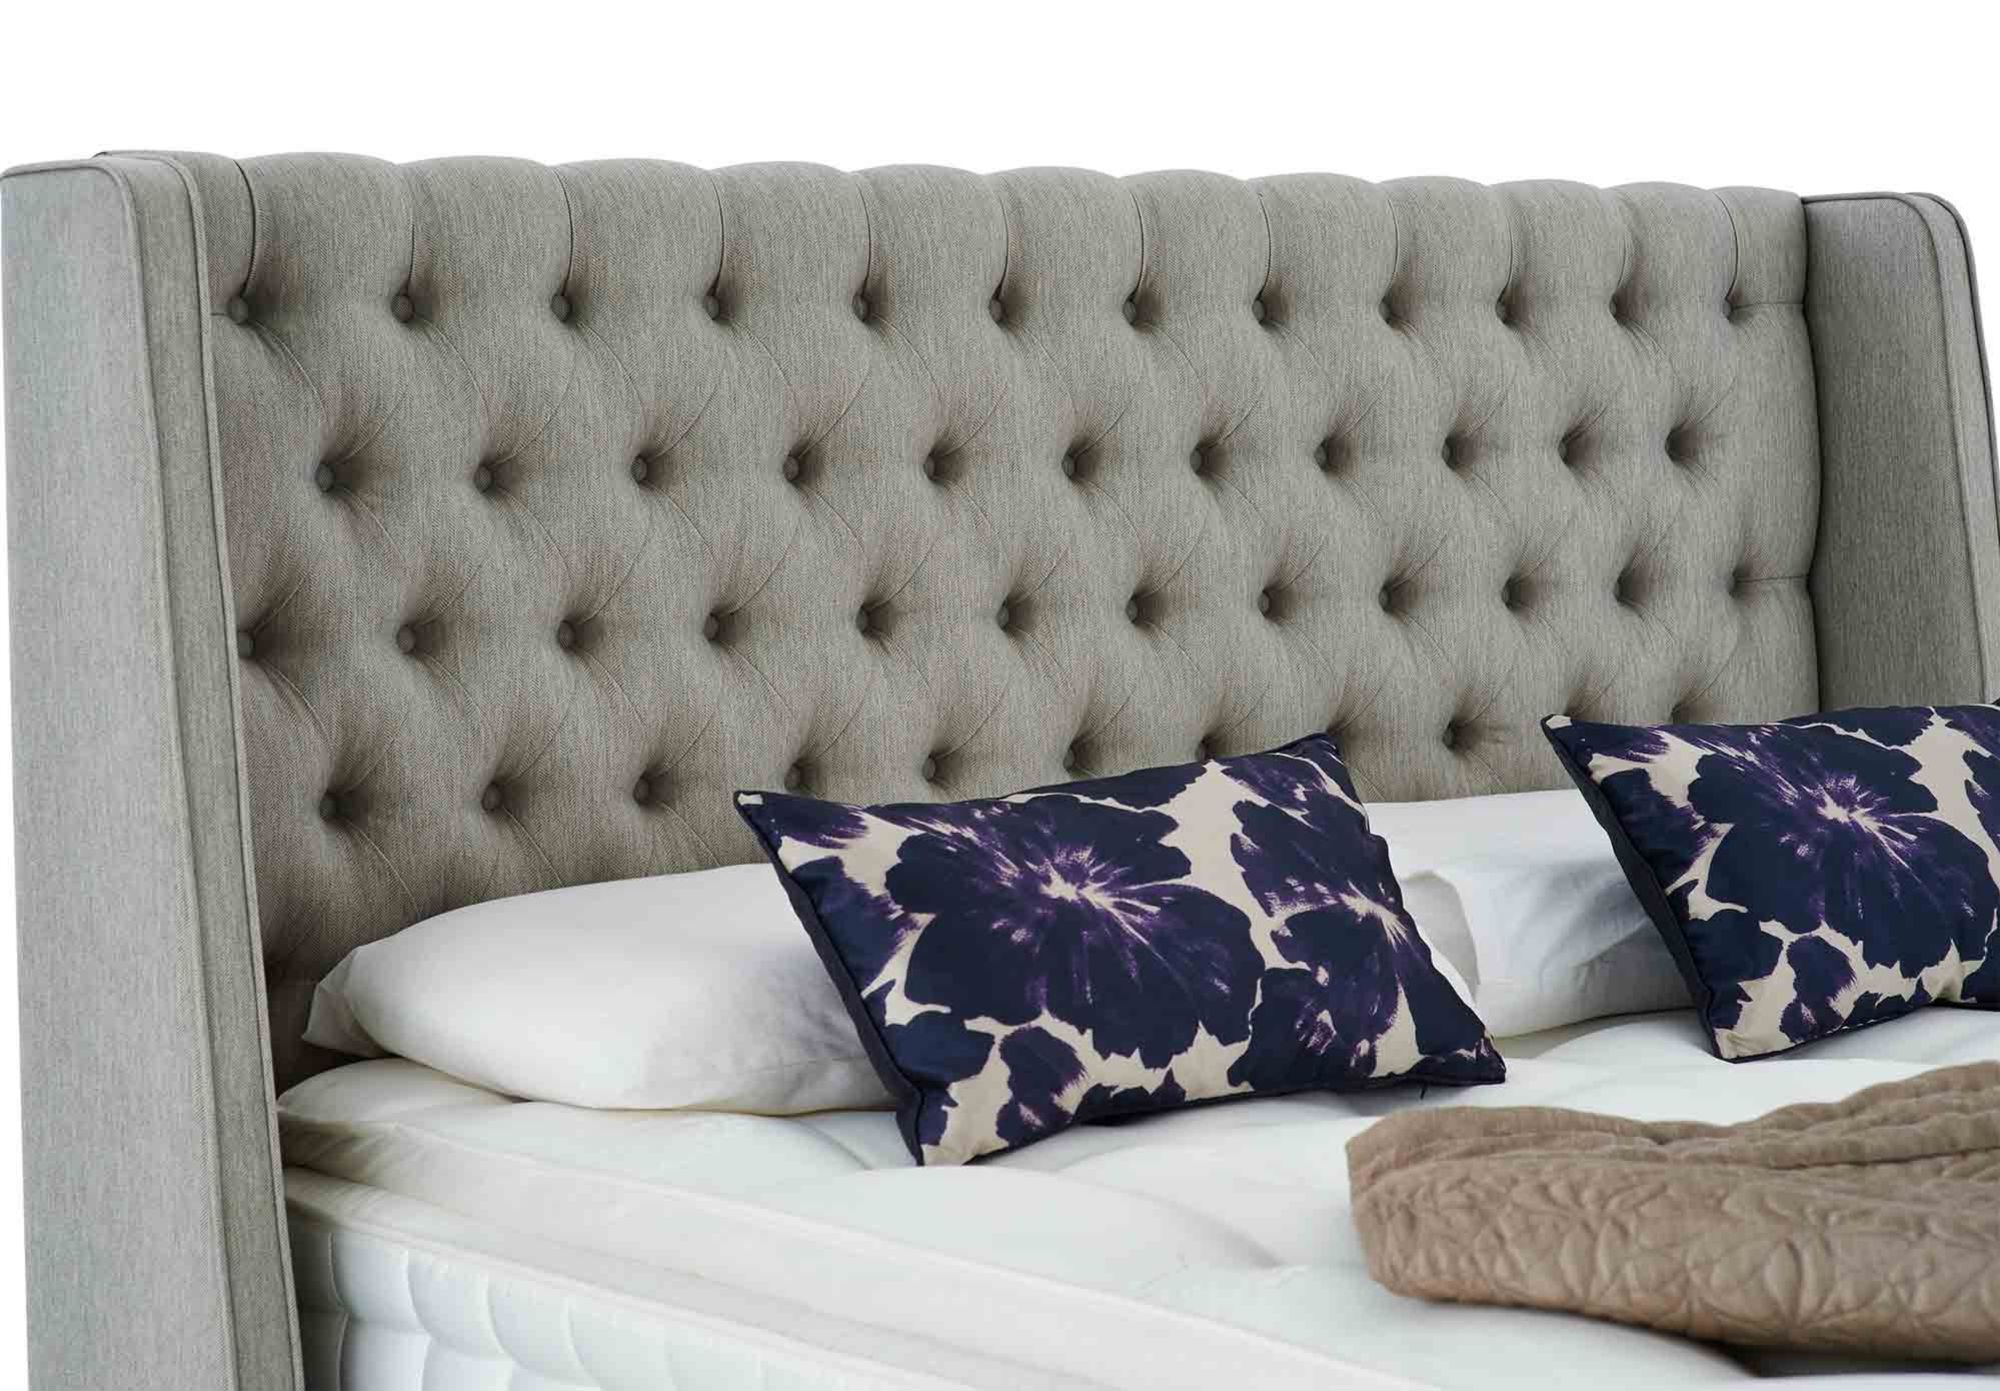 Furniture Village Hartford Sofa Super King Size Upholstered Headboard Hypnos Lewestone Headboard